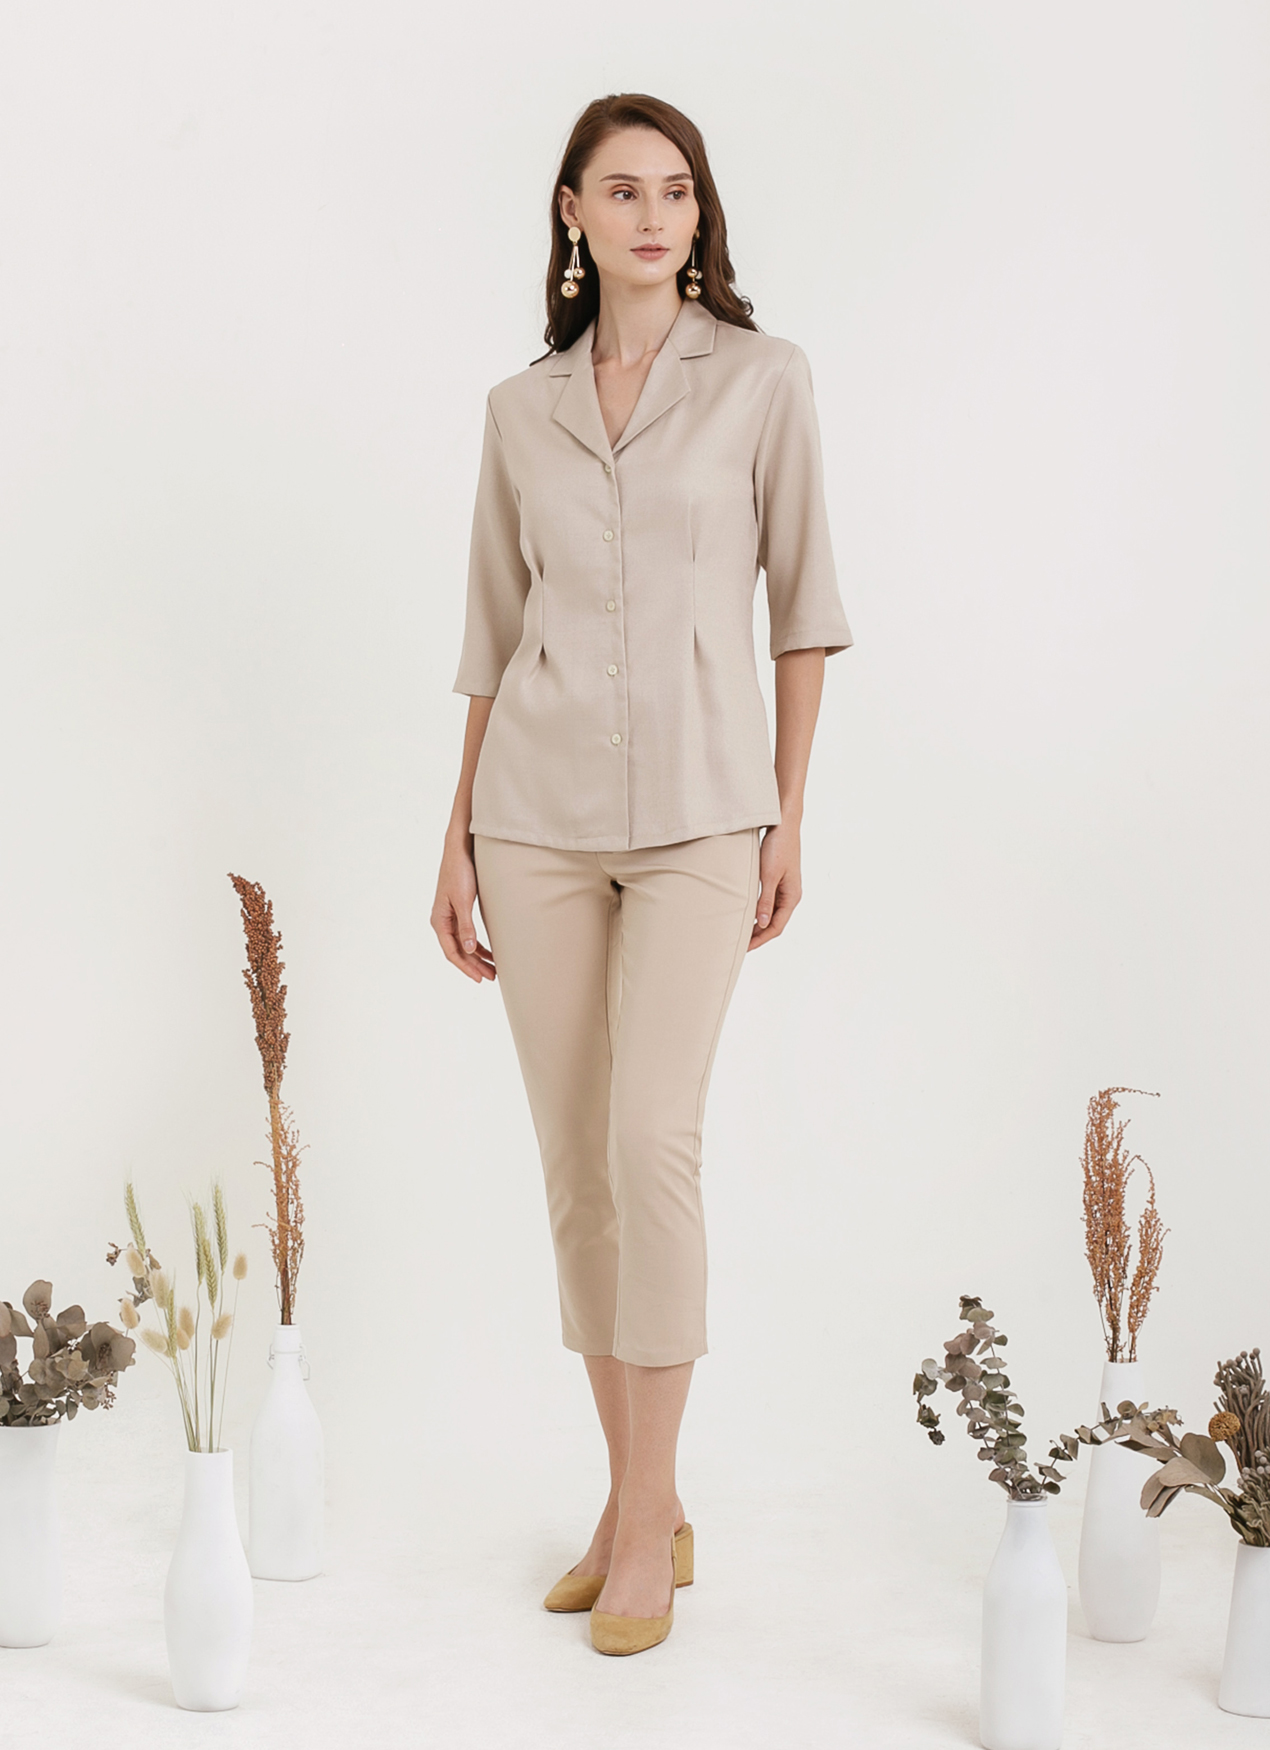 CLOTH INC Linen Collar Shirt - Light Beige